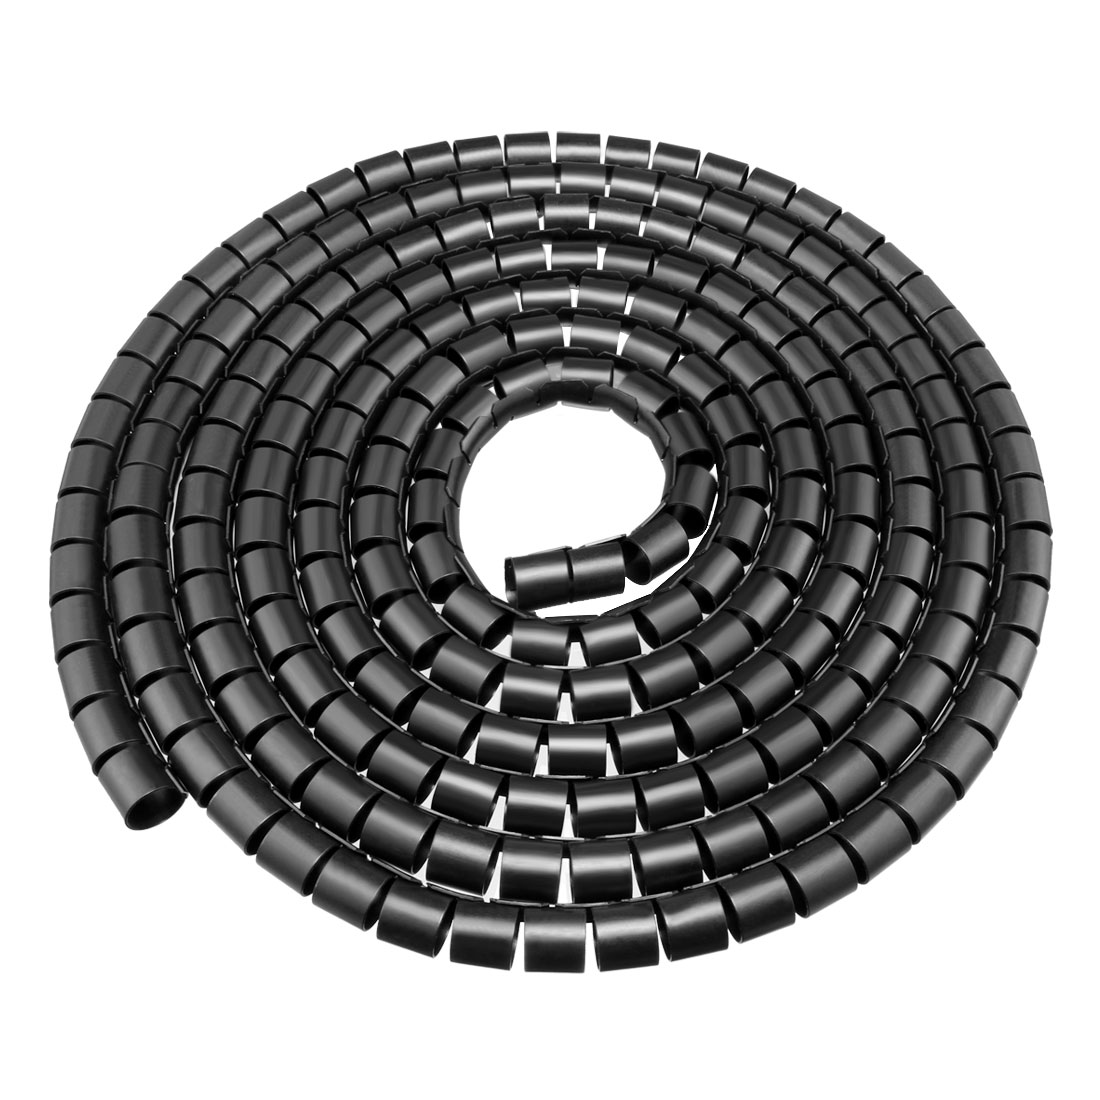 25mm Flexible Spiral Tube Cable Wire Wrap Computer Manage Cord Black 5M